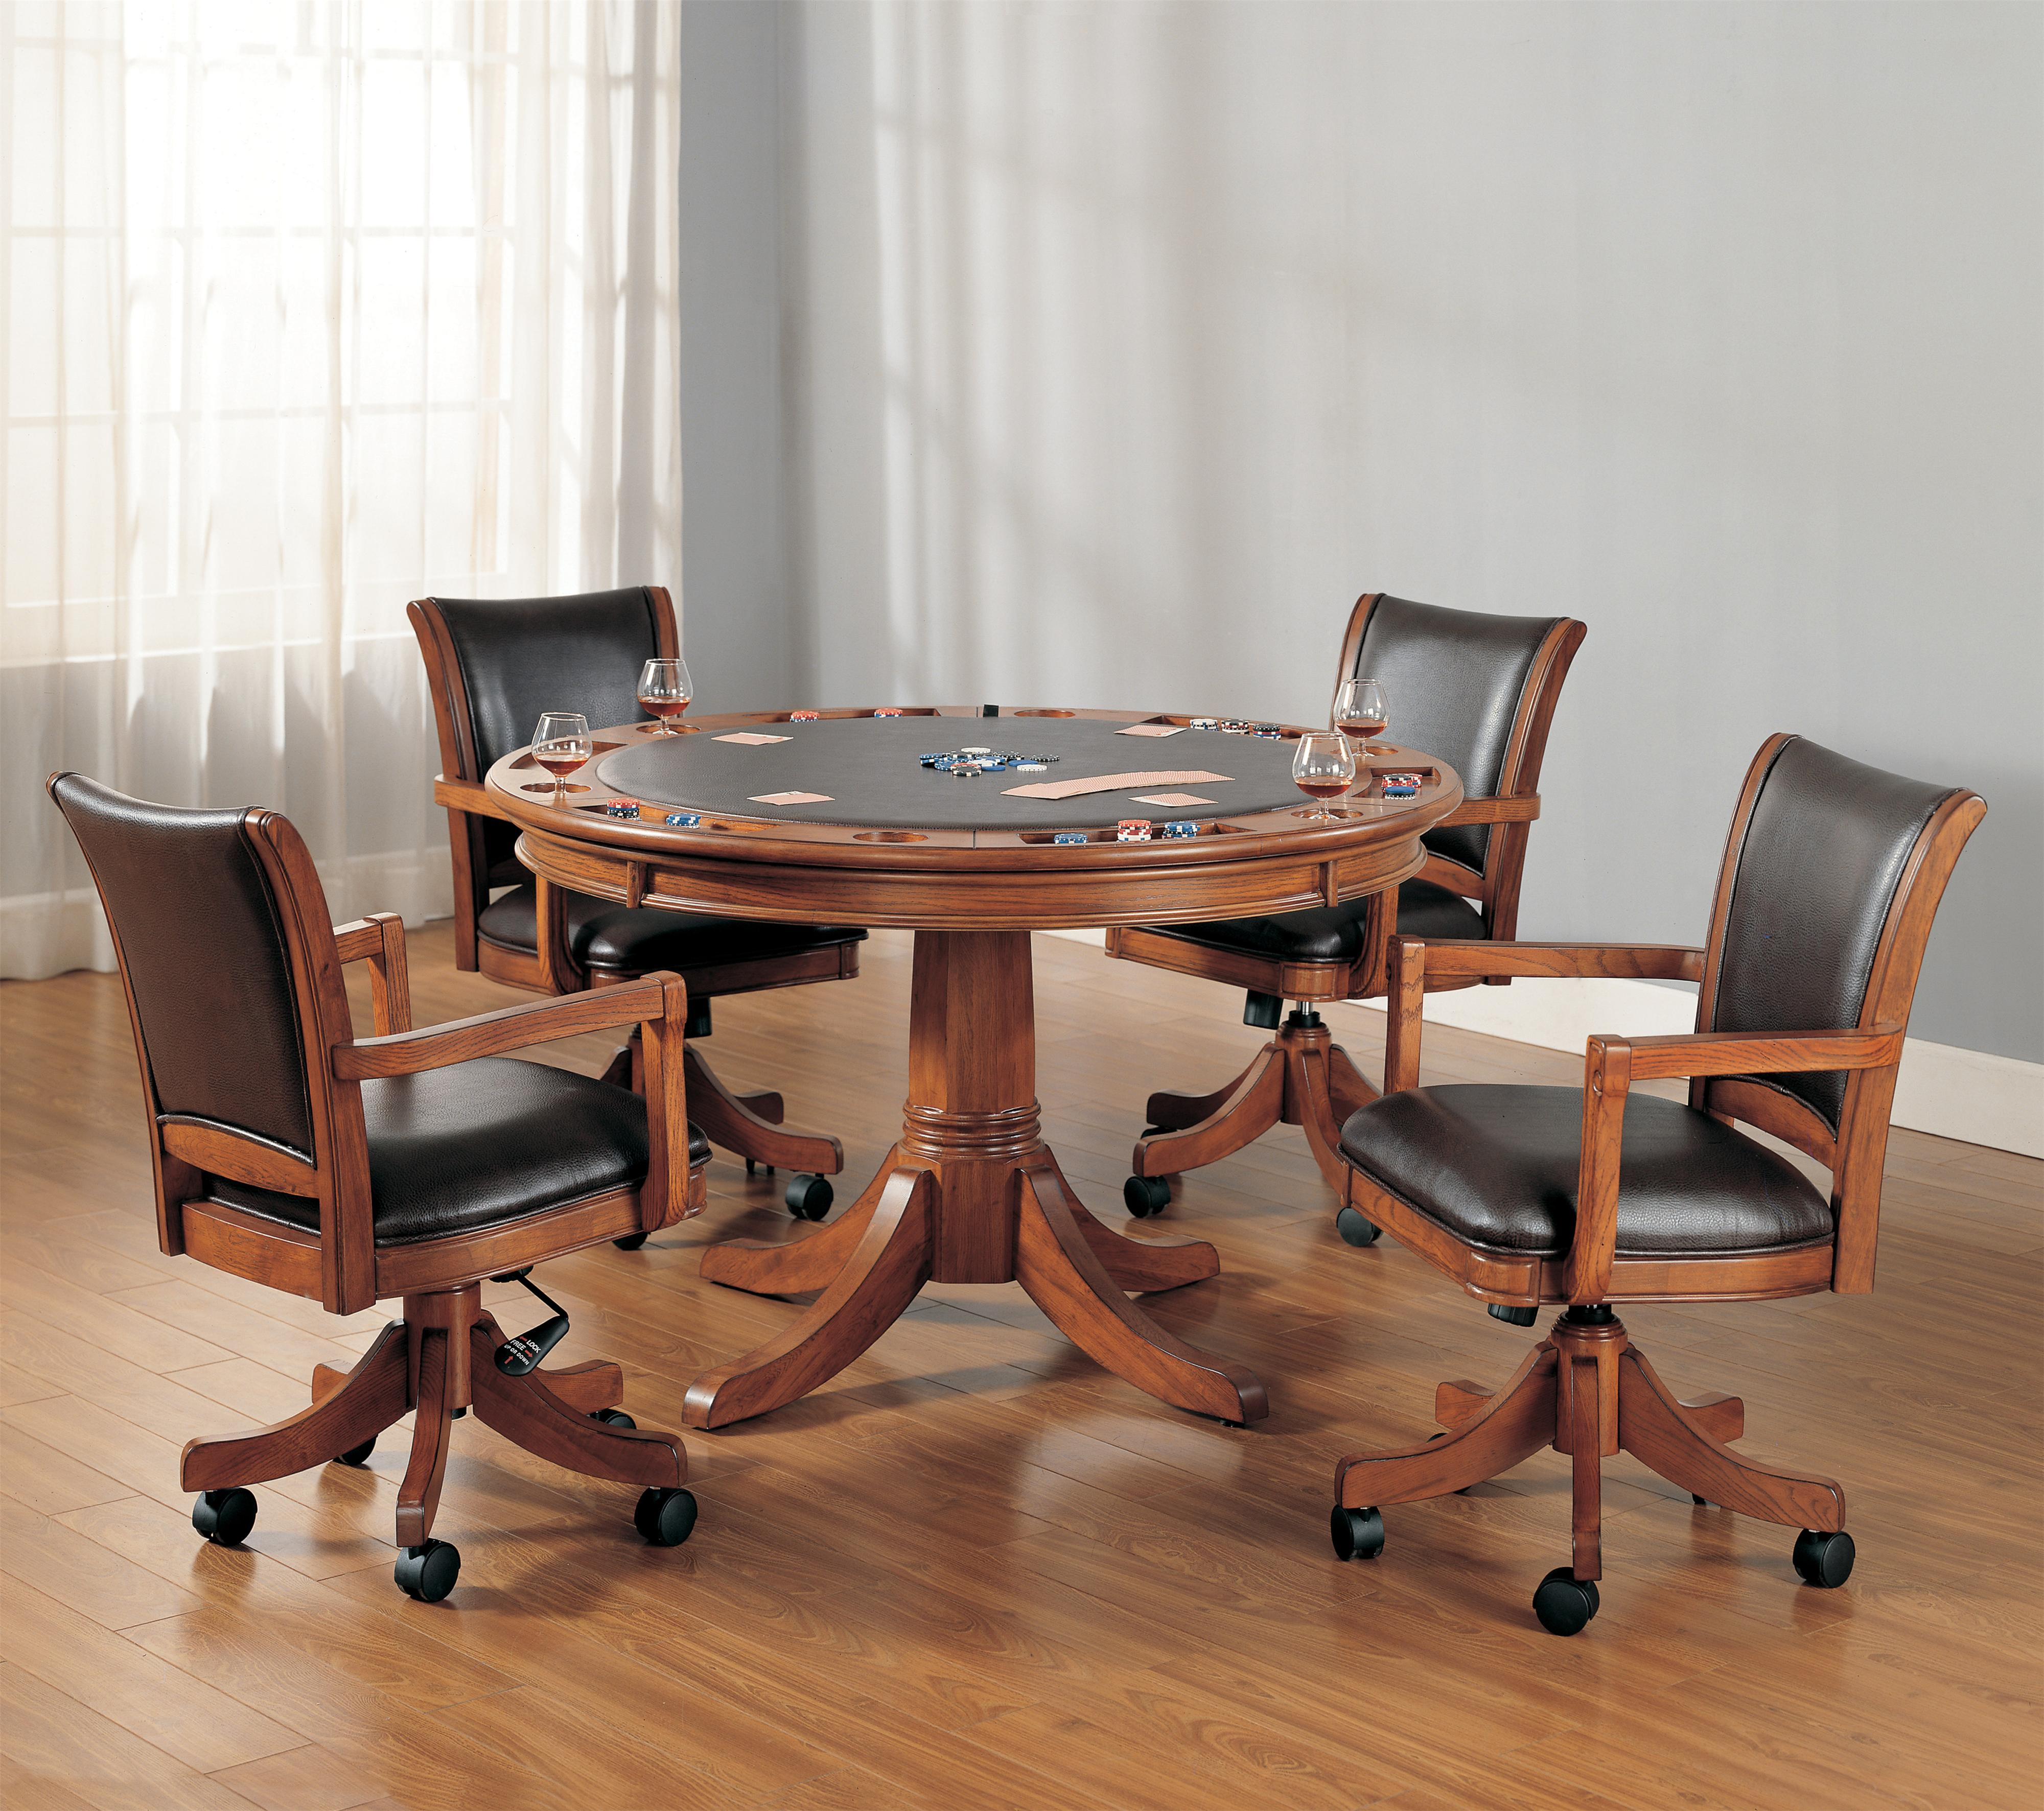 Hillsdale Park View Five Piece Gaming Lift Top Table And Chair Set Westrich Furniture Appliances Dining 5 Piece Sets